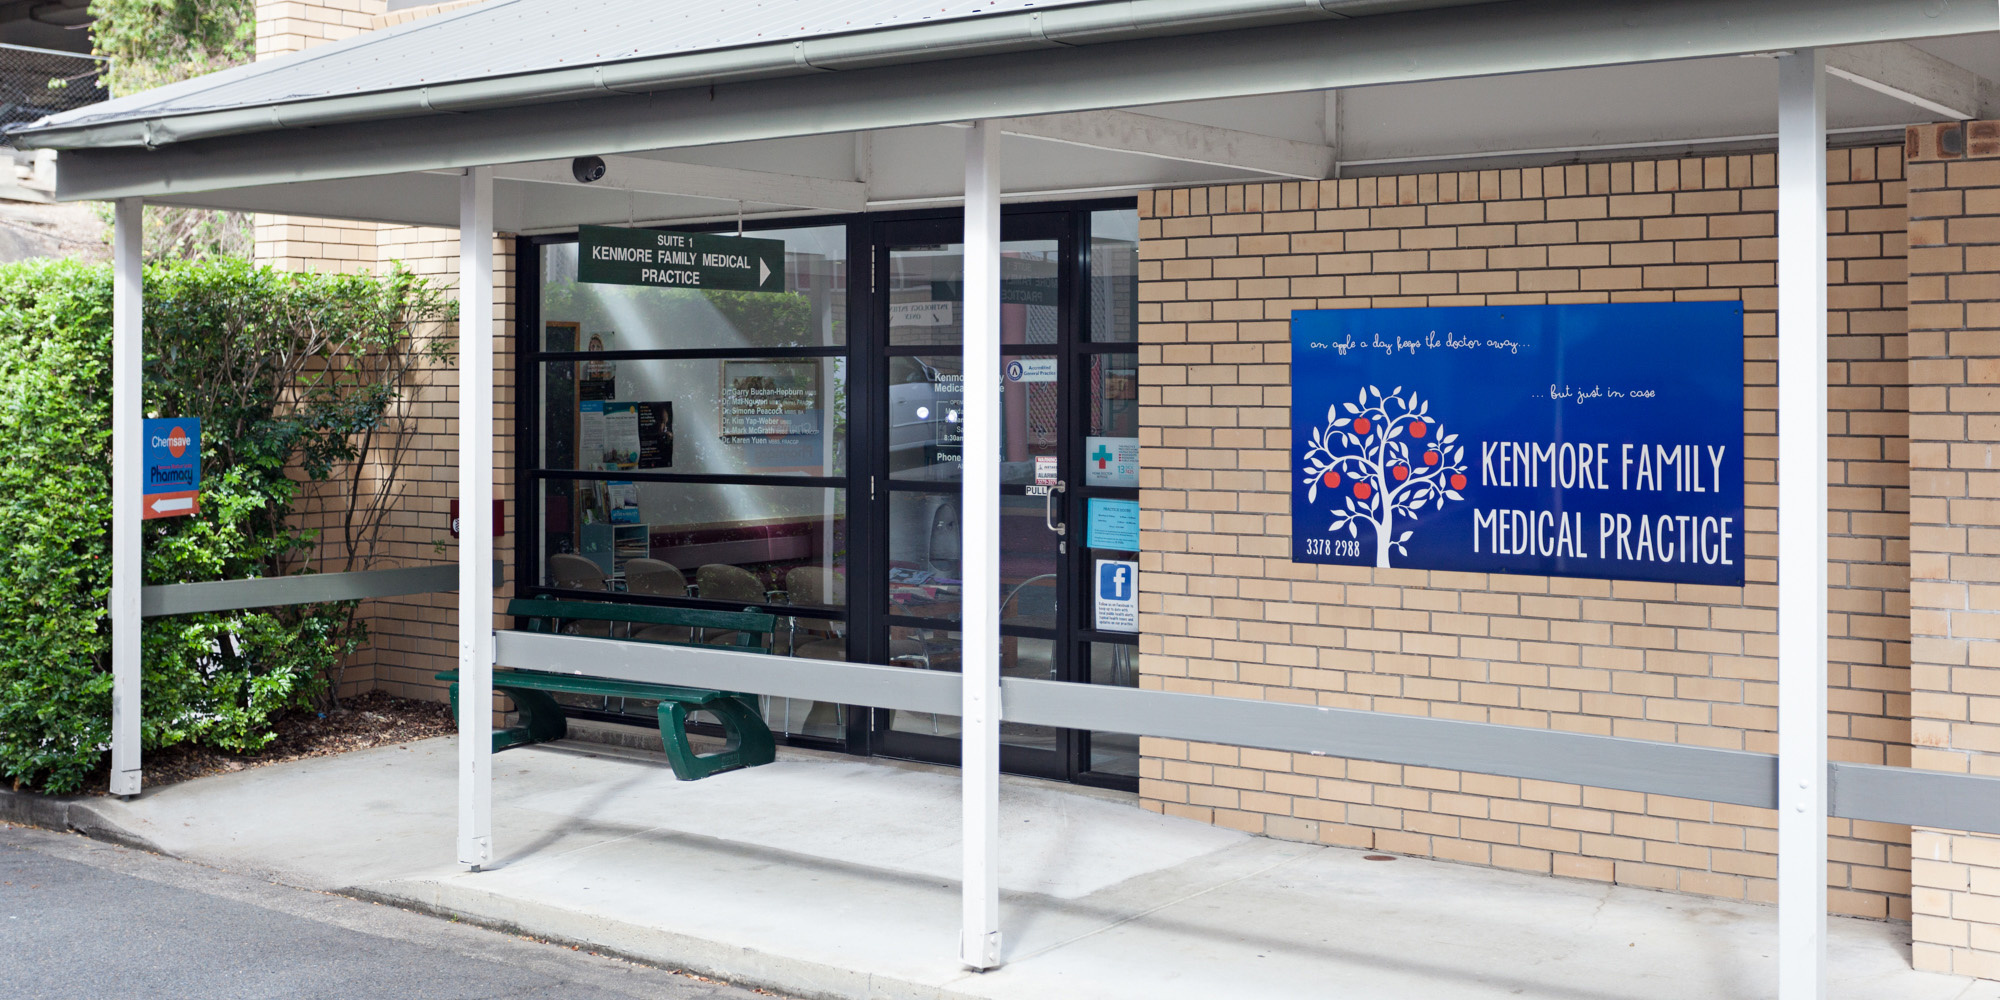 Kenmore Family Medical Practice at 1/2081 Moggill Rd, Kenmore.